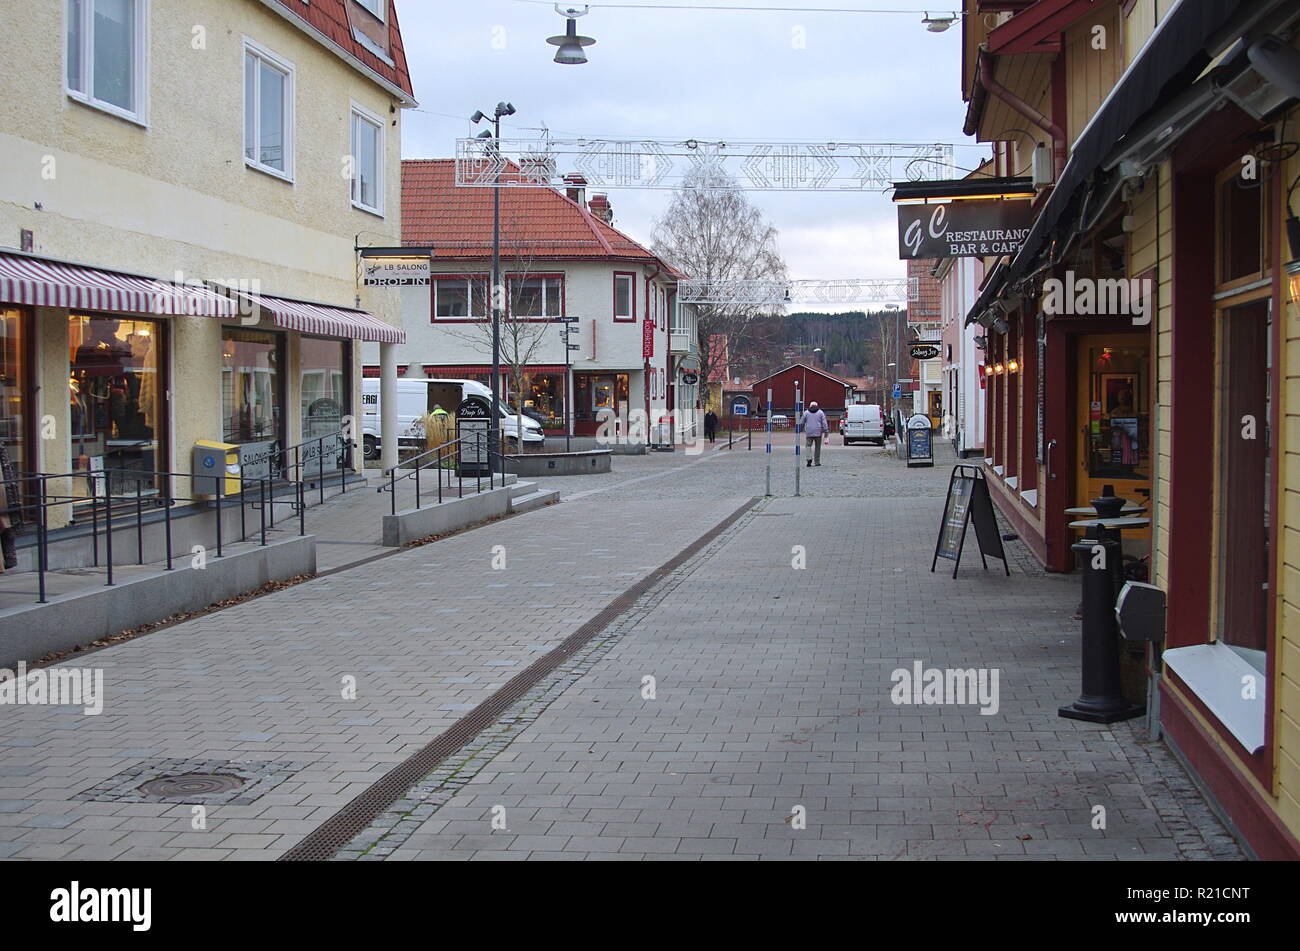 The small town of Leksand in Dalarna,Sweden on a grey autumn day.15.11.2018 - Stock Image